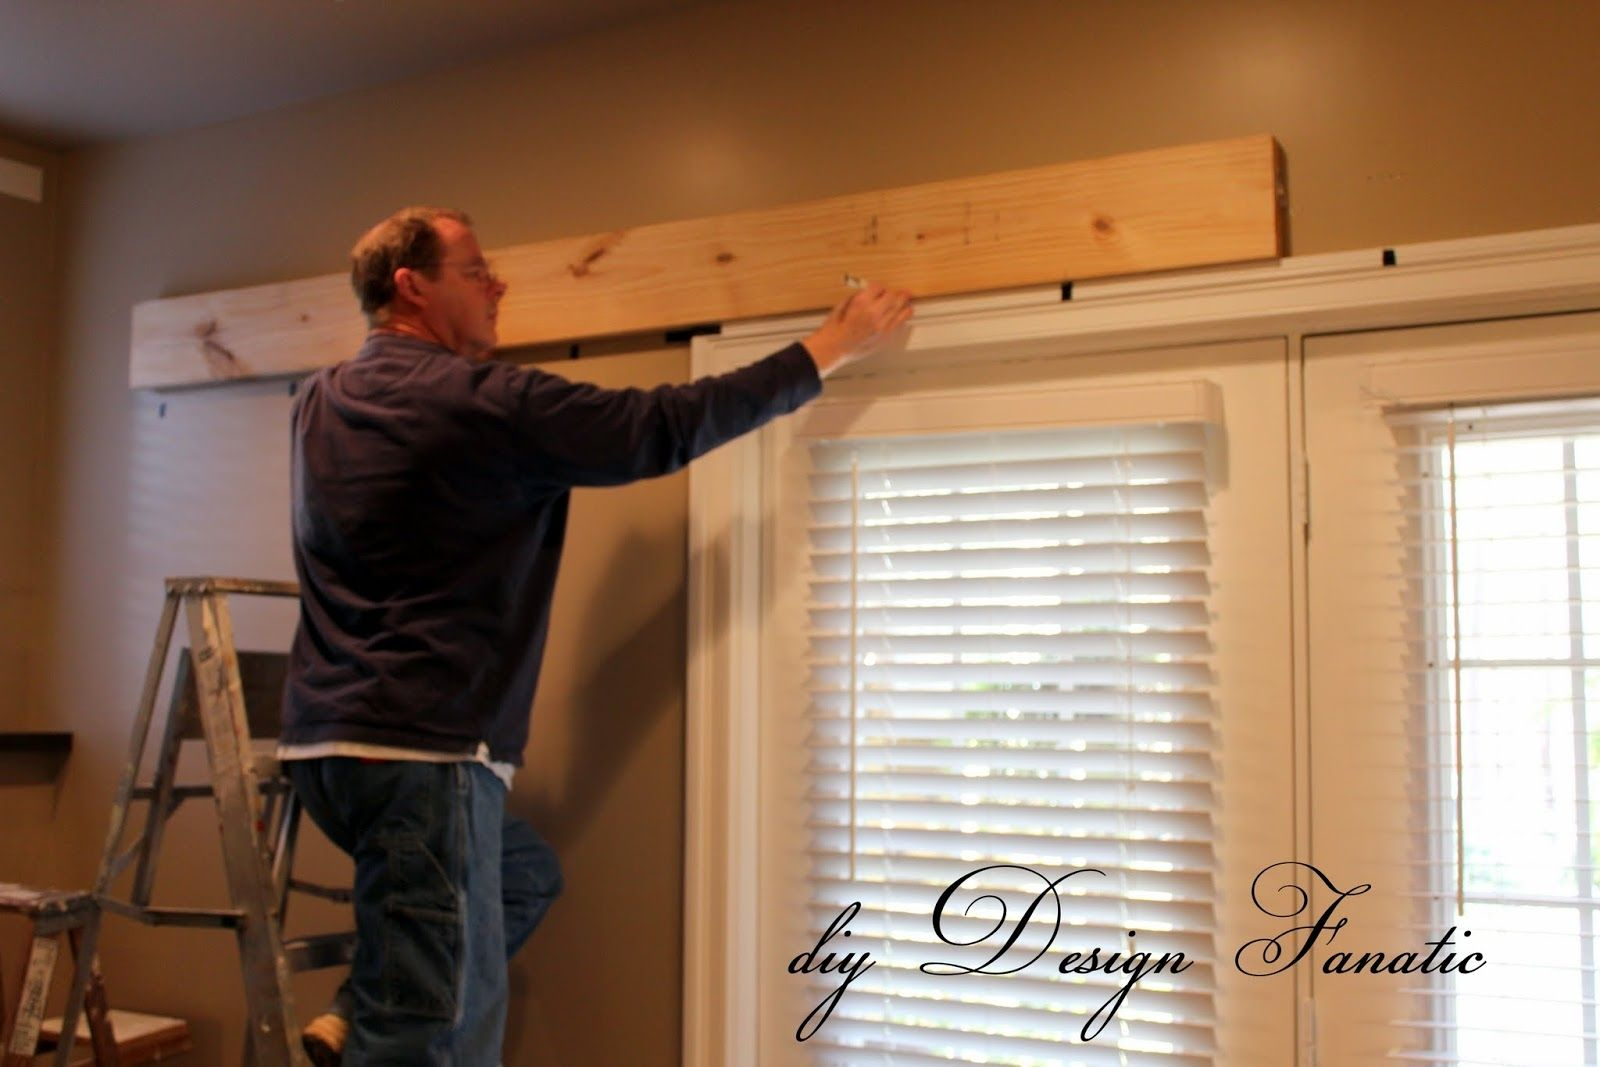 Hanging A Barn Door Without Studs Diy Barn Door Hanging Barn Doors Making Barn Doors